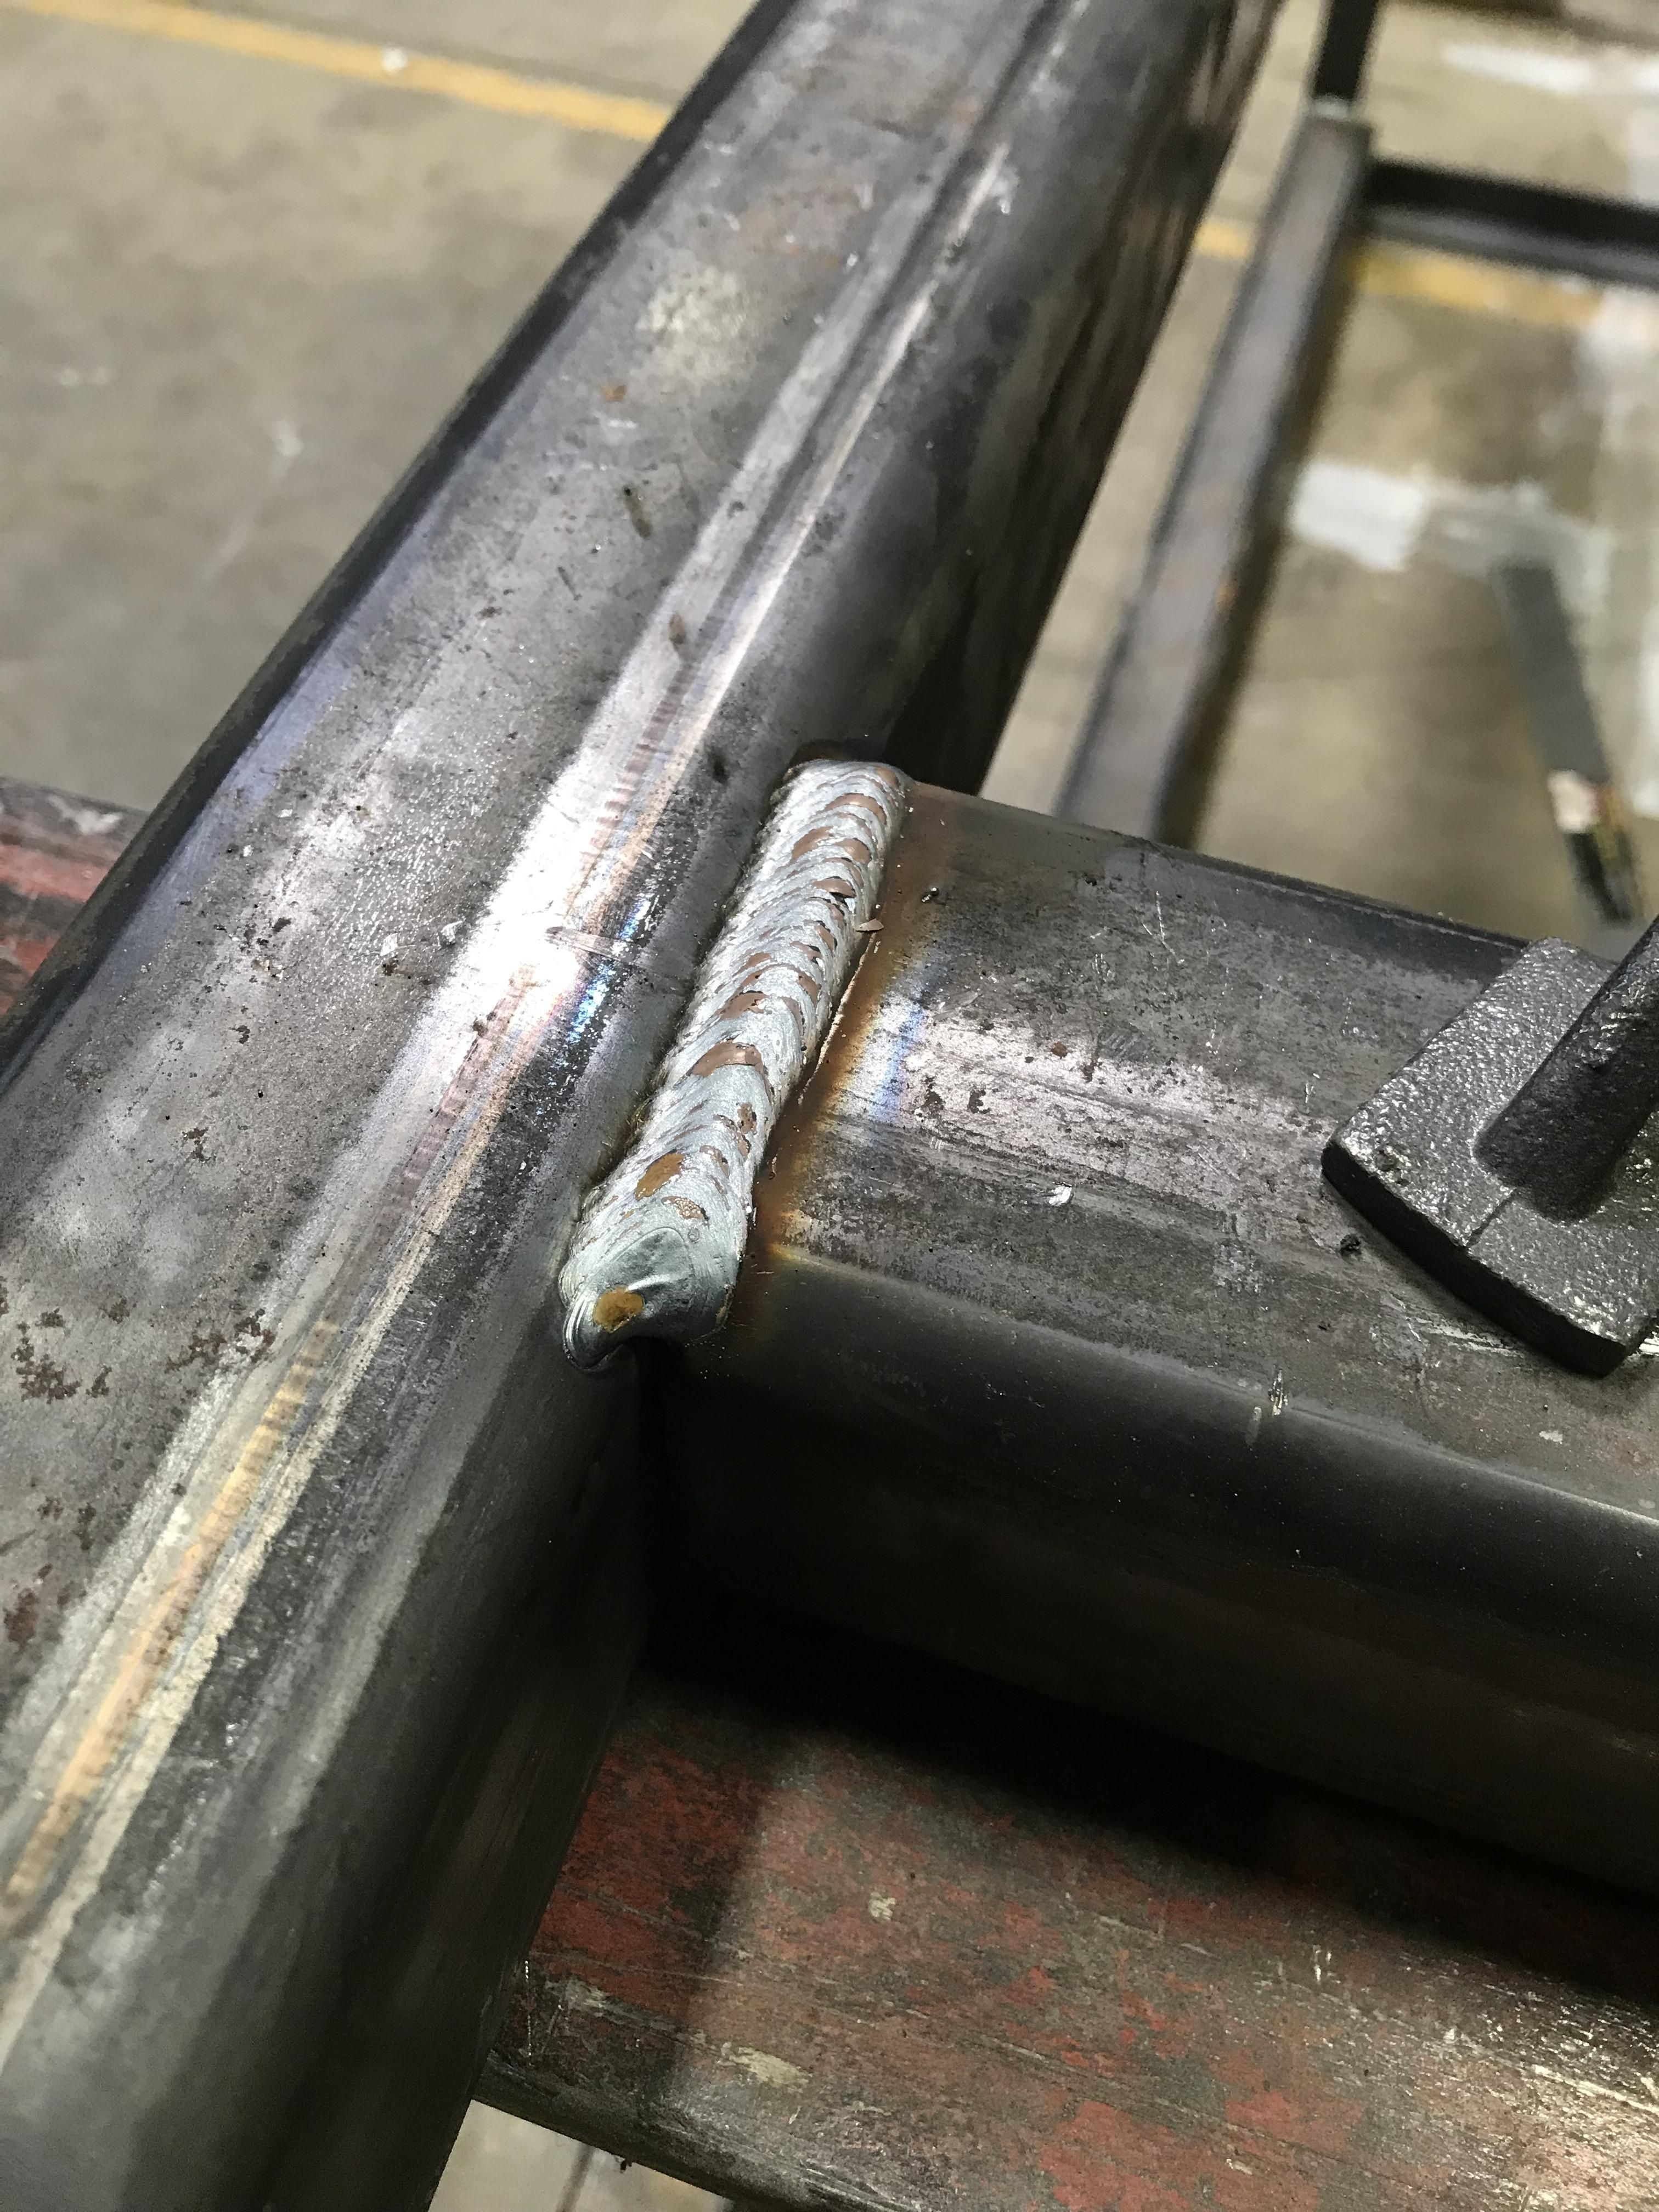 I Have Basic Skills In Mig Welding All Self Taught Thinking About Taking Classes To Learn Tig And Maybe Get A Welding Certification Welding Welding Training